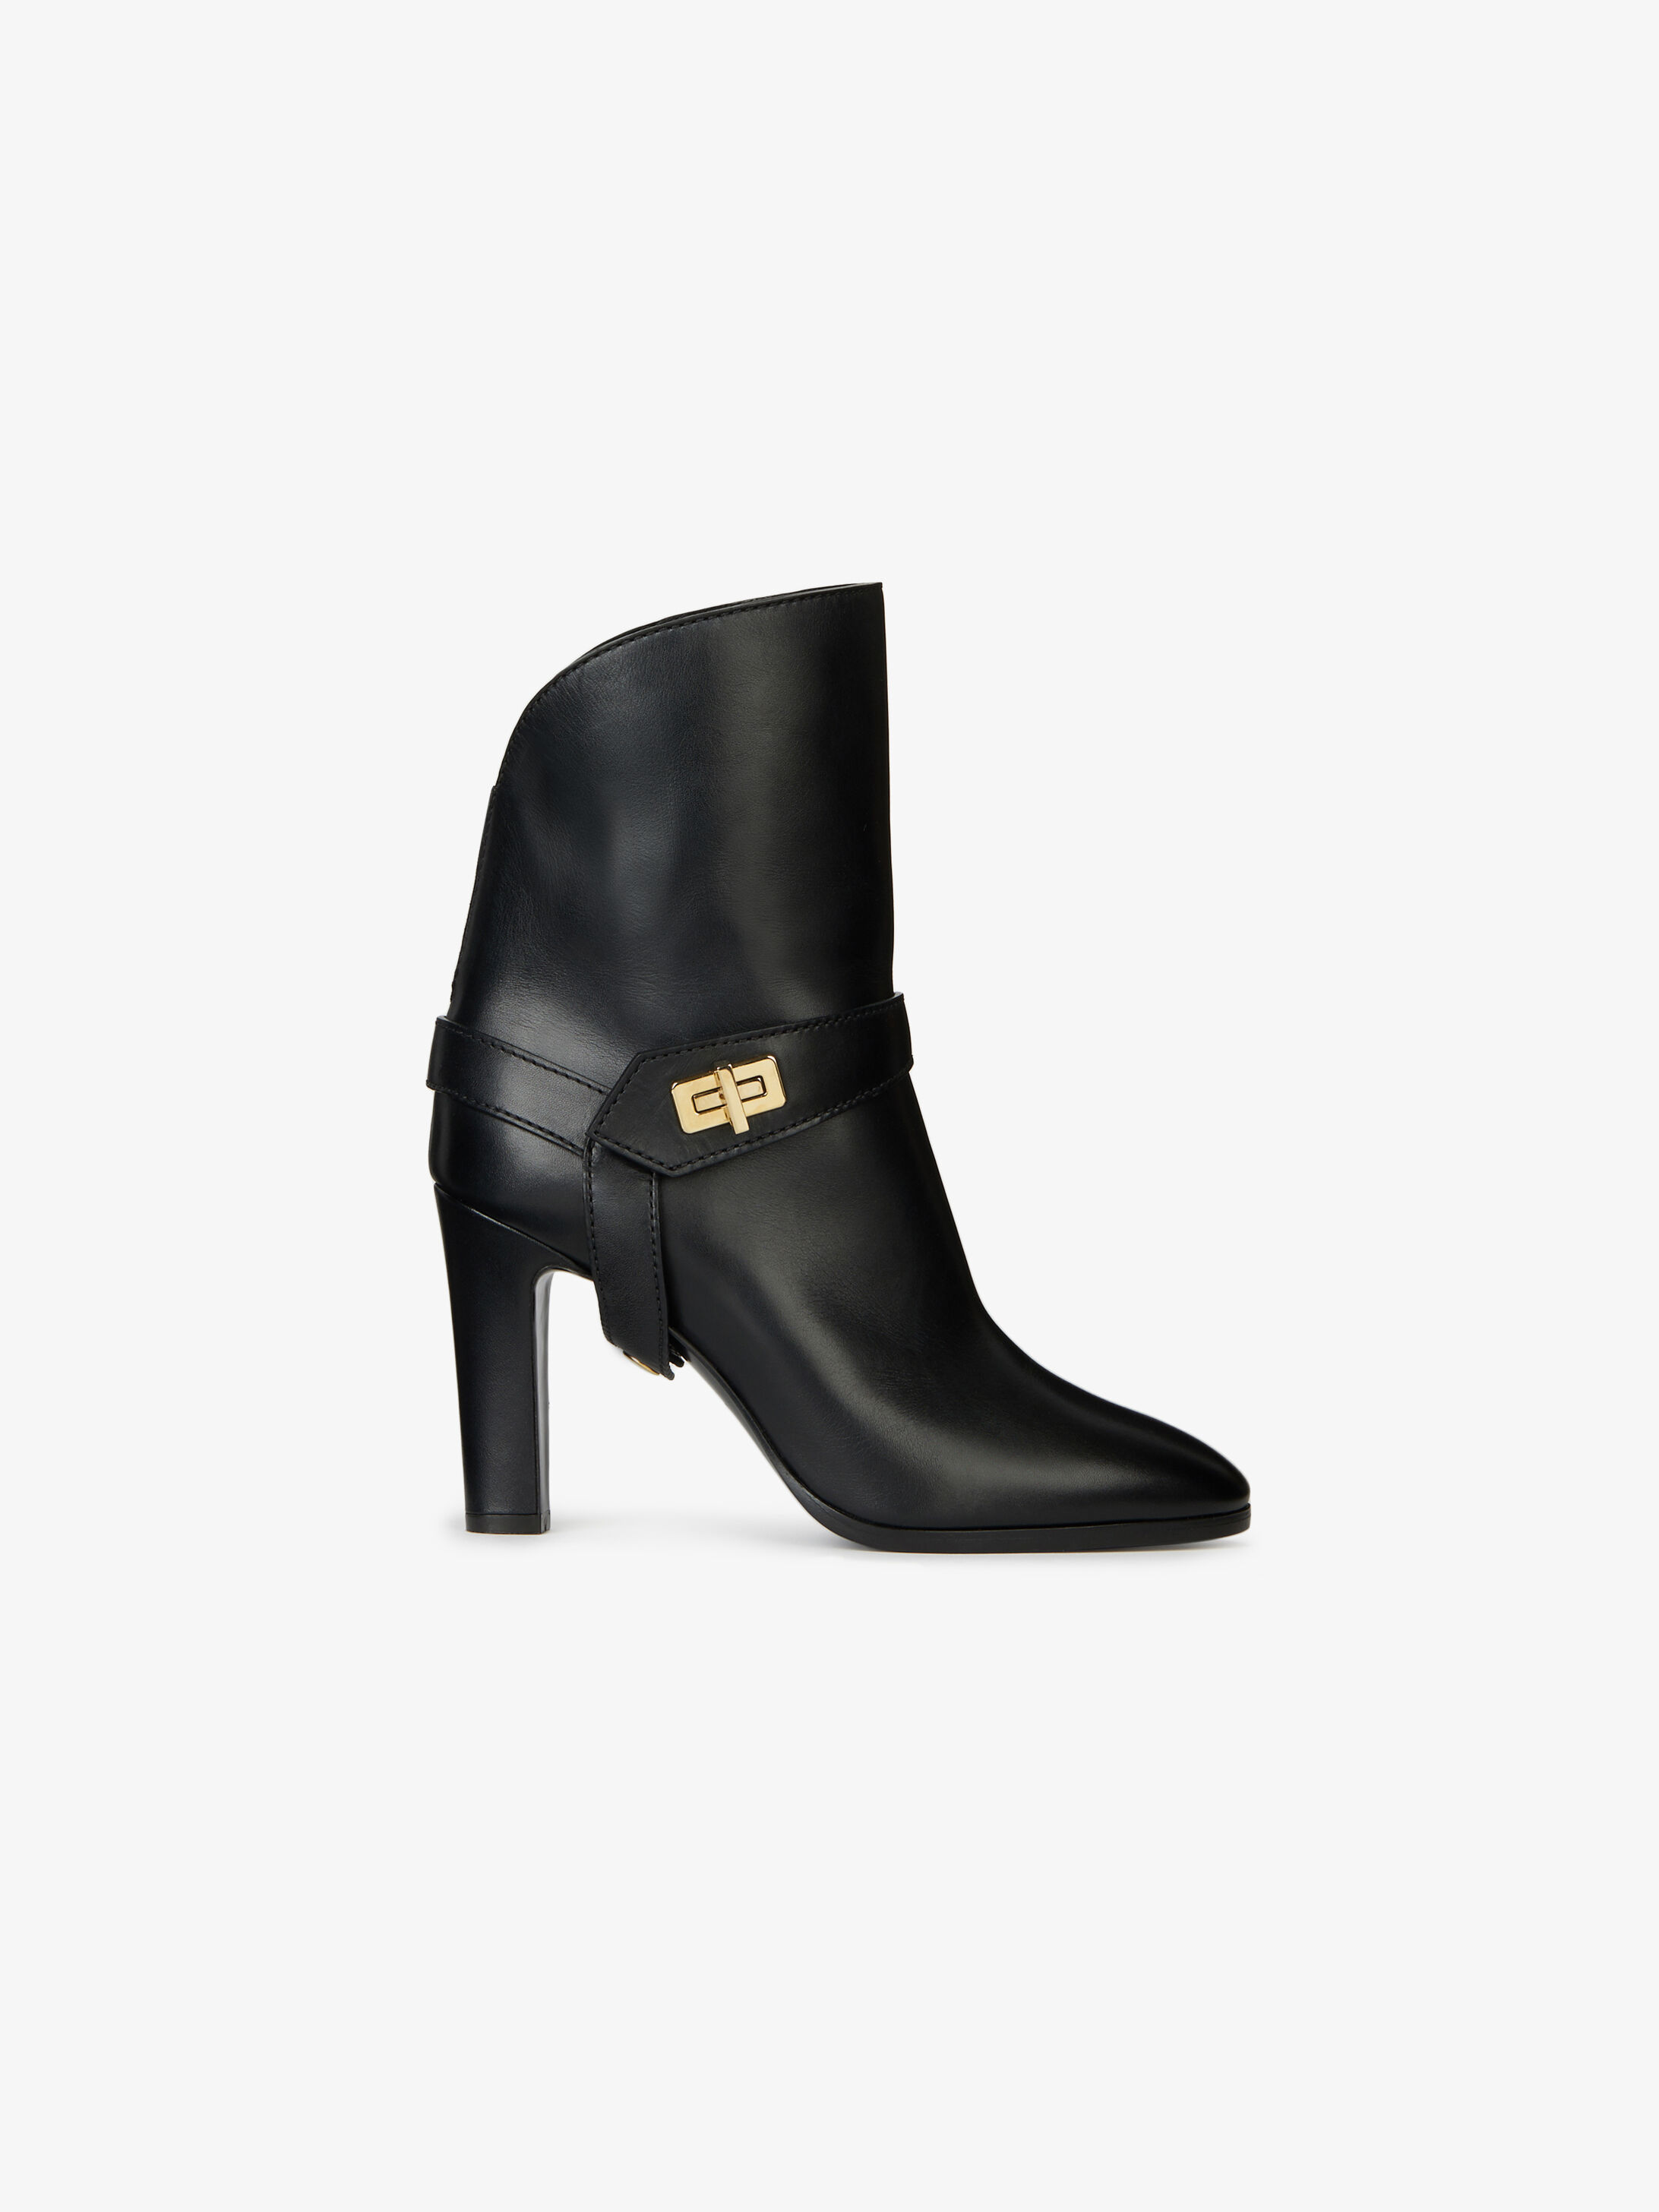 Bottines Bottes Givenchy et La collection Femme par LqVUzMpGS